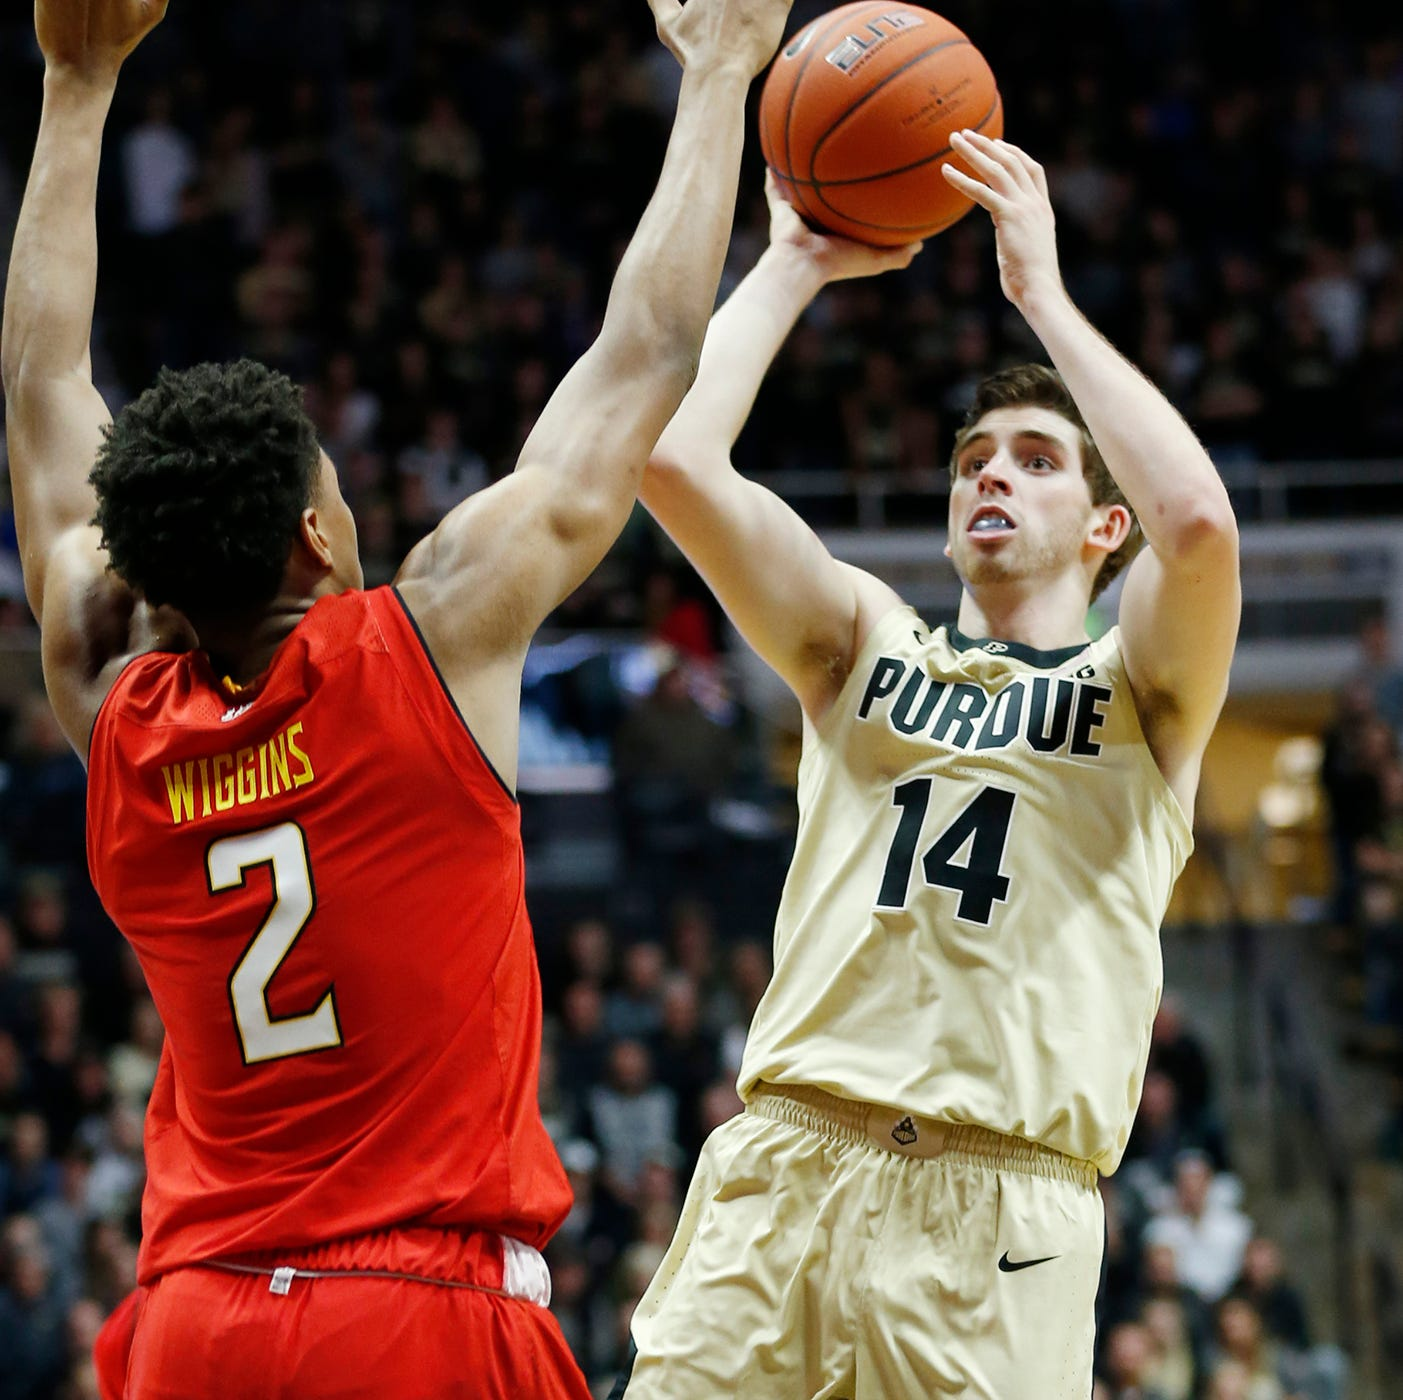 Purdue basketball's volatility has left it on the wrong end of close games